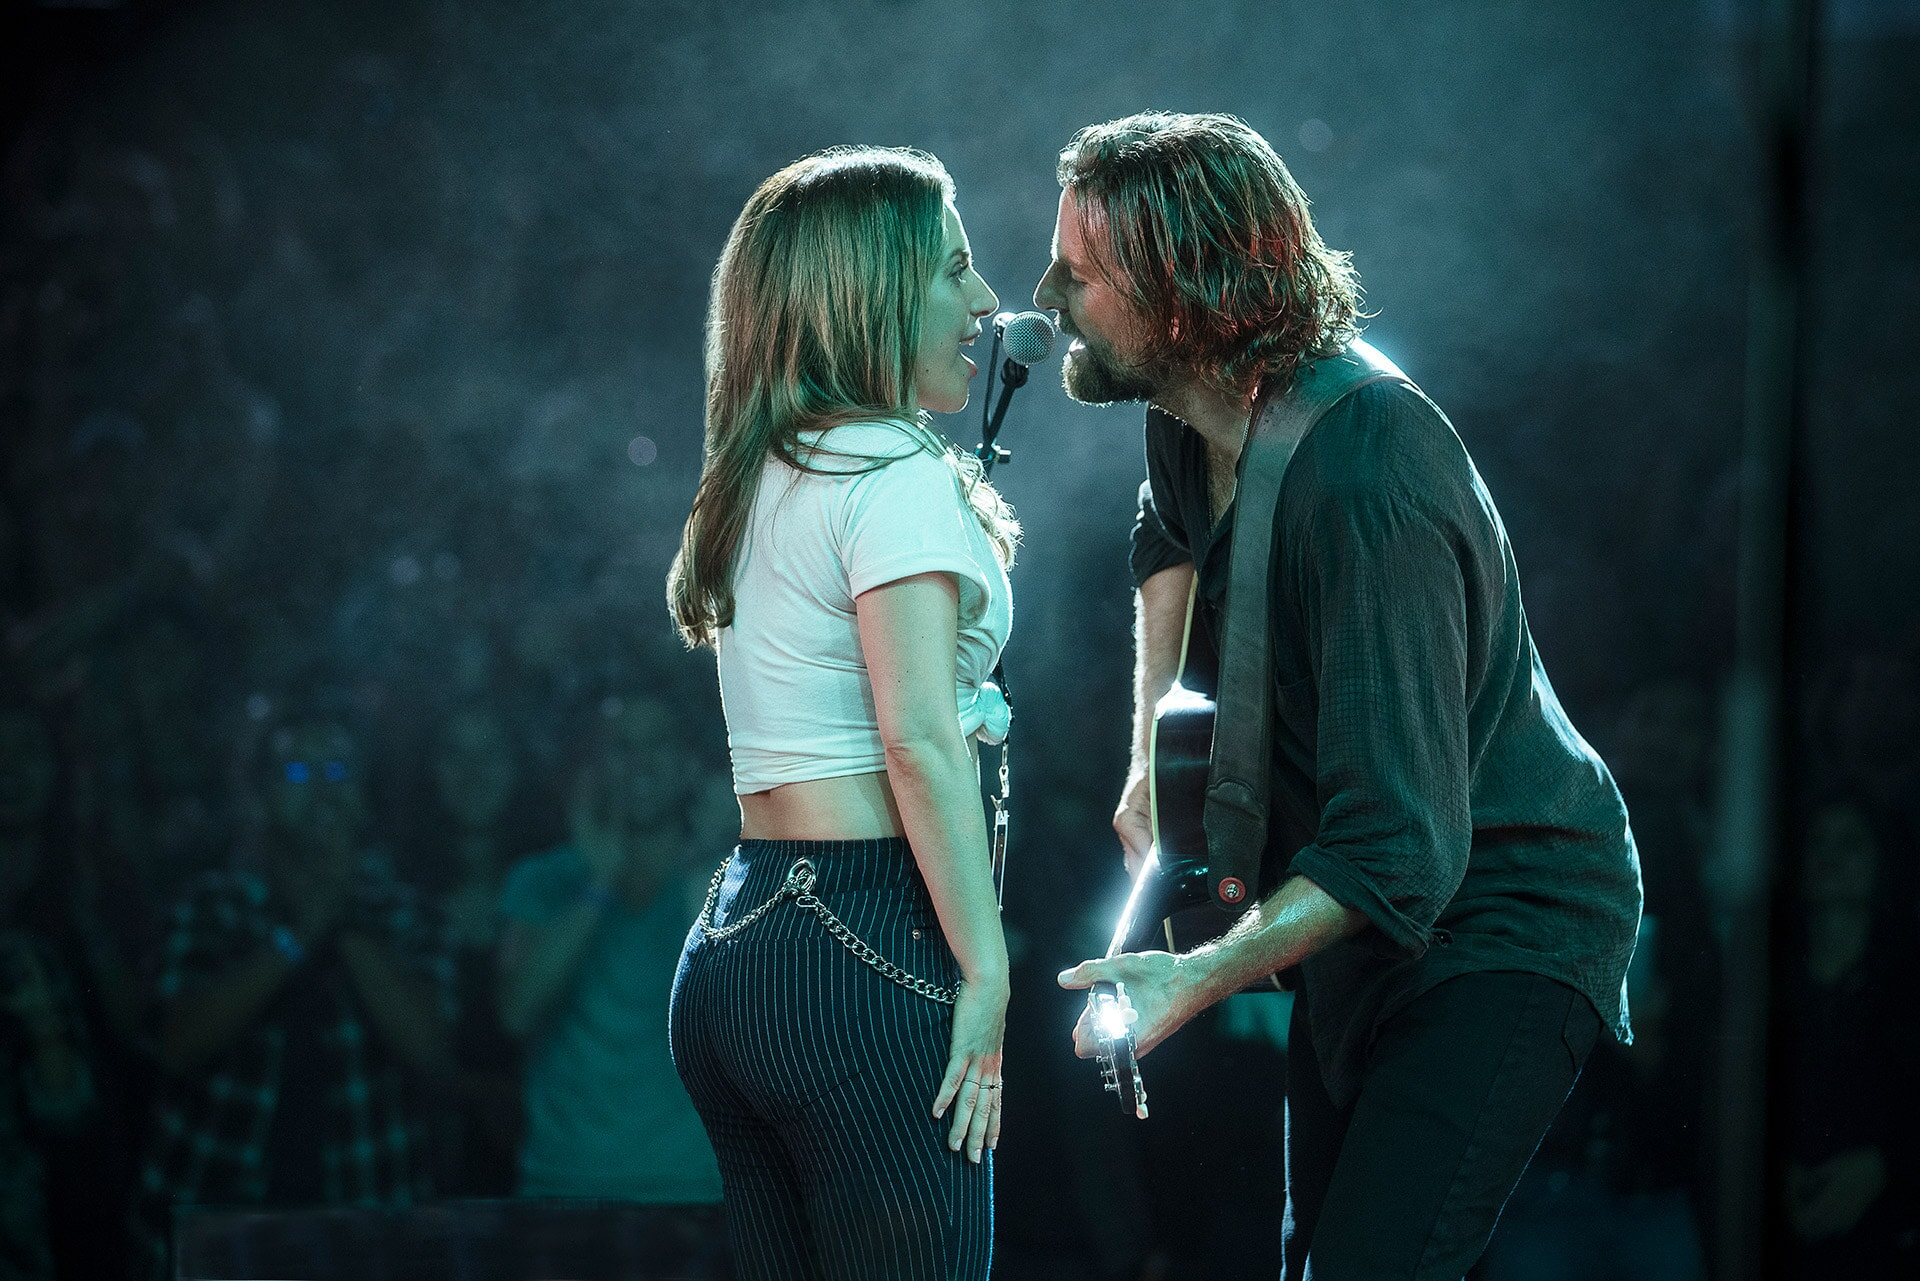 A Star is Born - Image 19